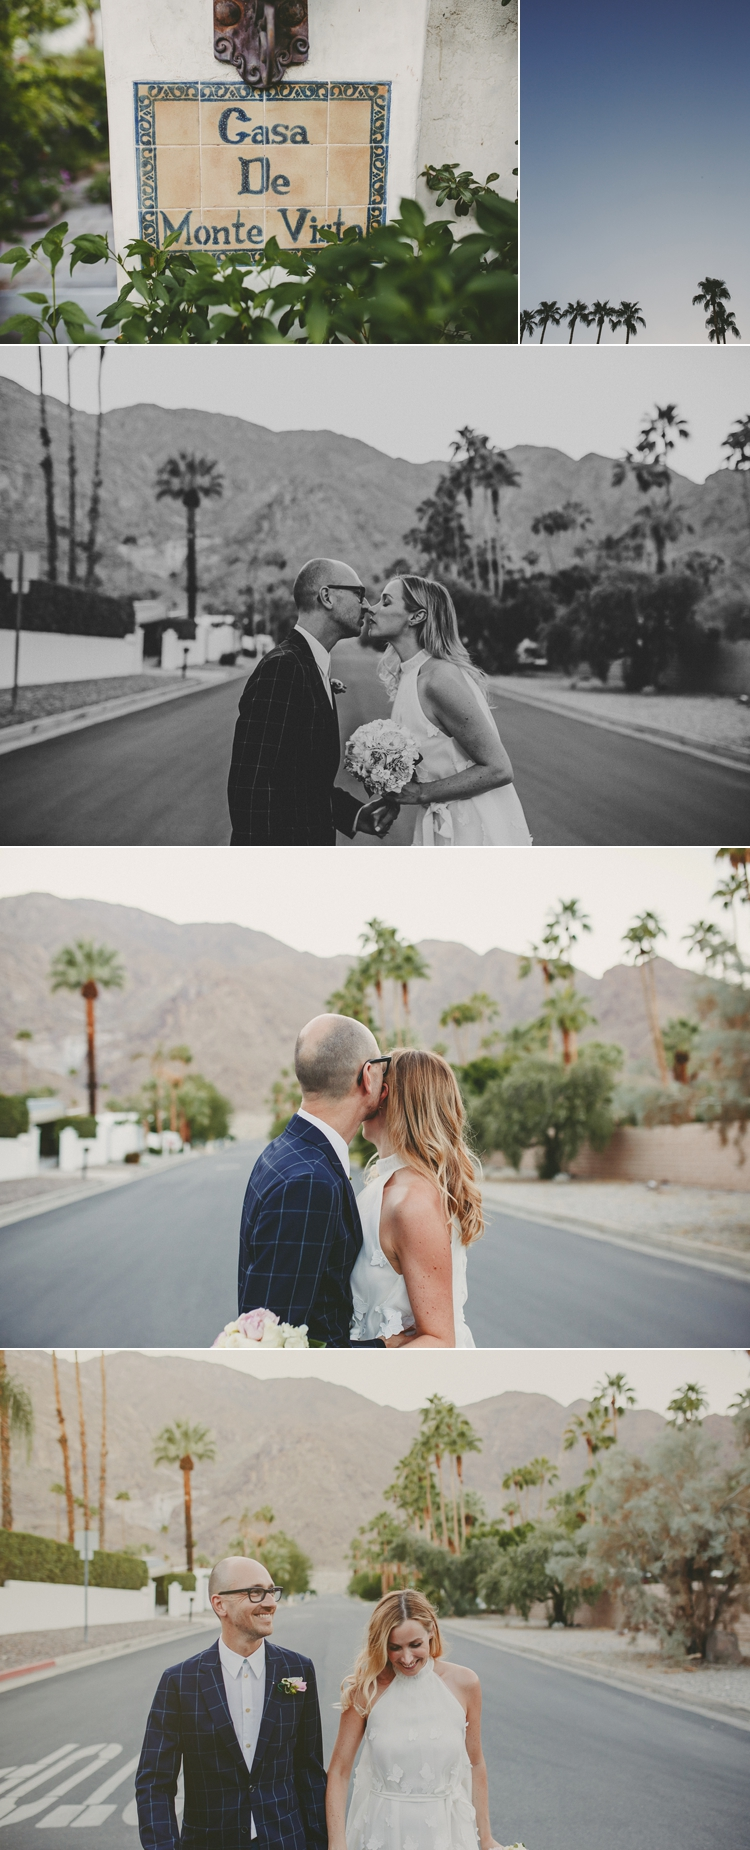 casa-de-monte-vista-wedding-photos-20